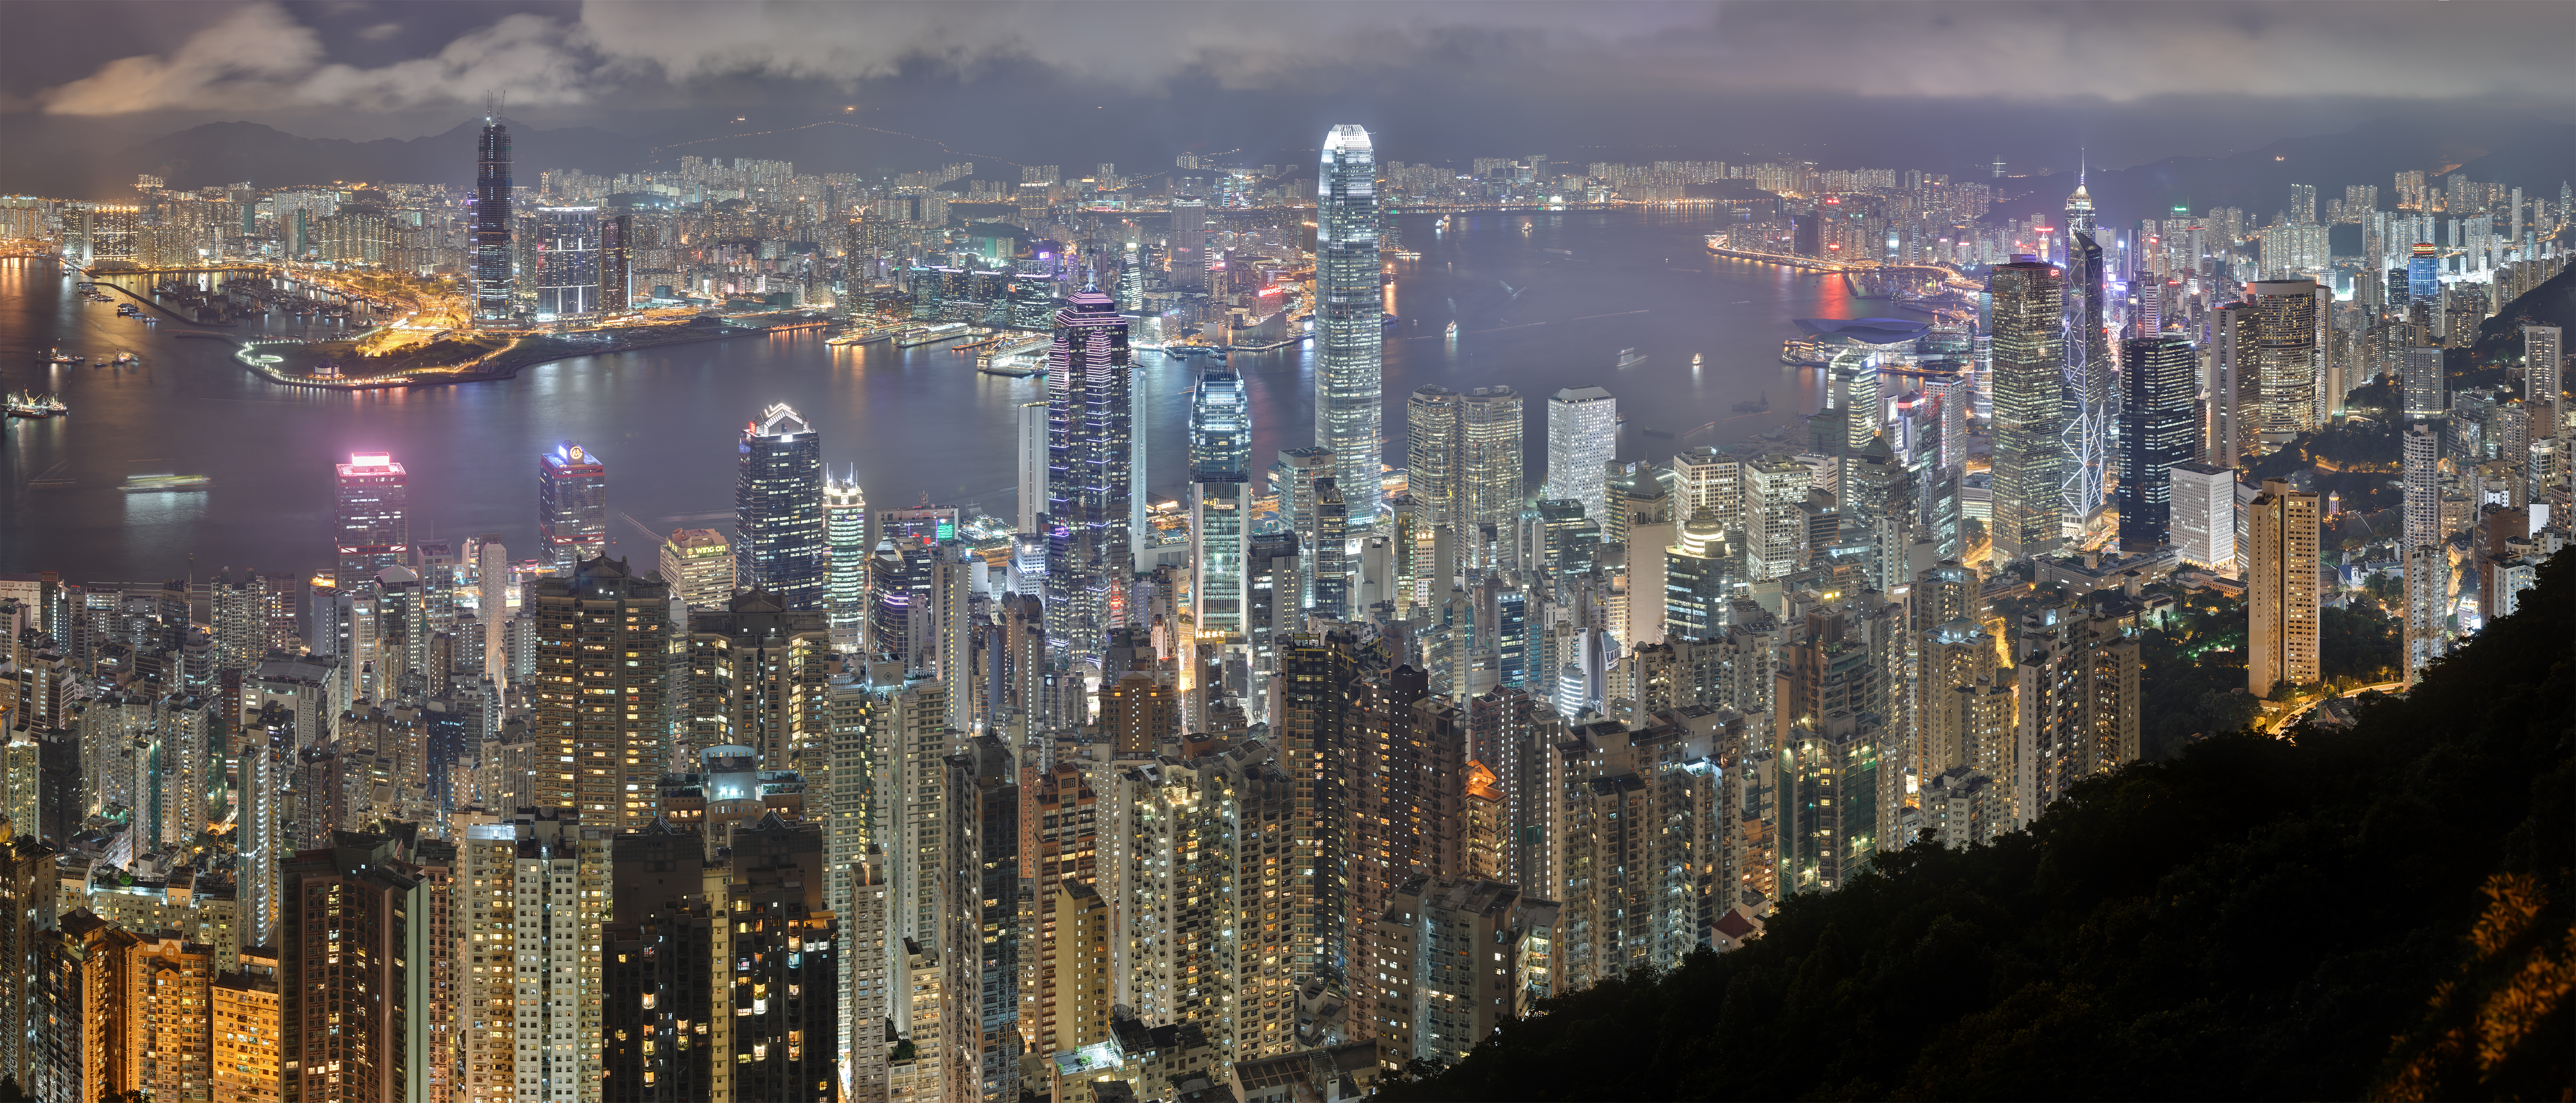 Victoria Harbour and the Hong Kong skyline at night from the hills behind the city by Base64, retouched by CarolSpears (CC BY-SA 3.0)